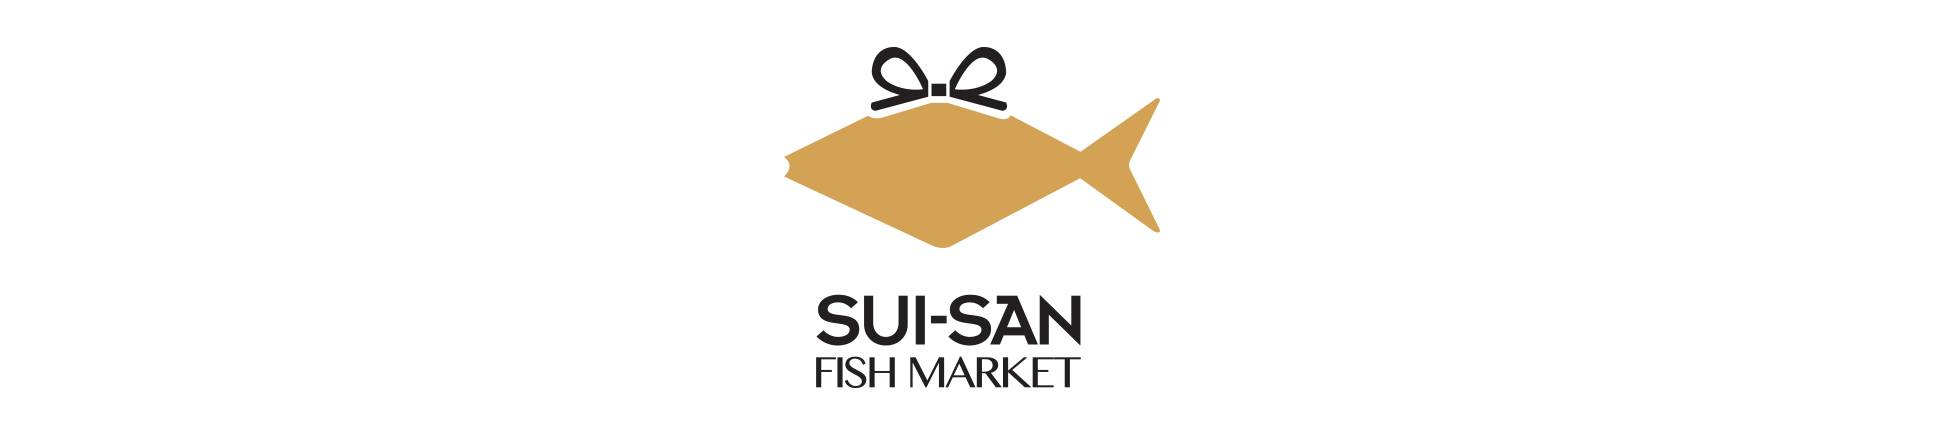 Success story - Sui San Fish Market - integrated marketing campaign